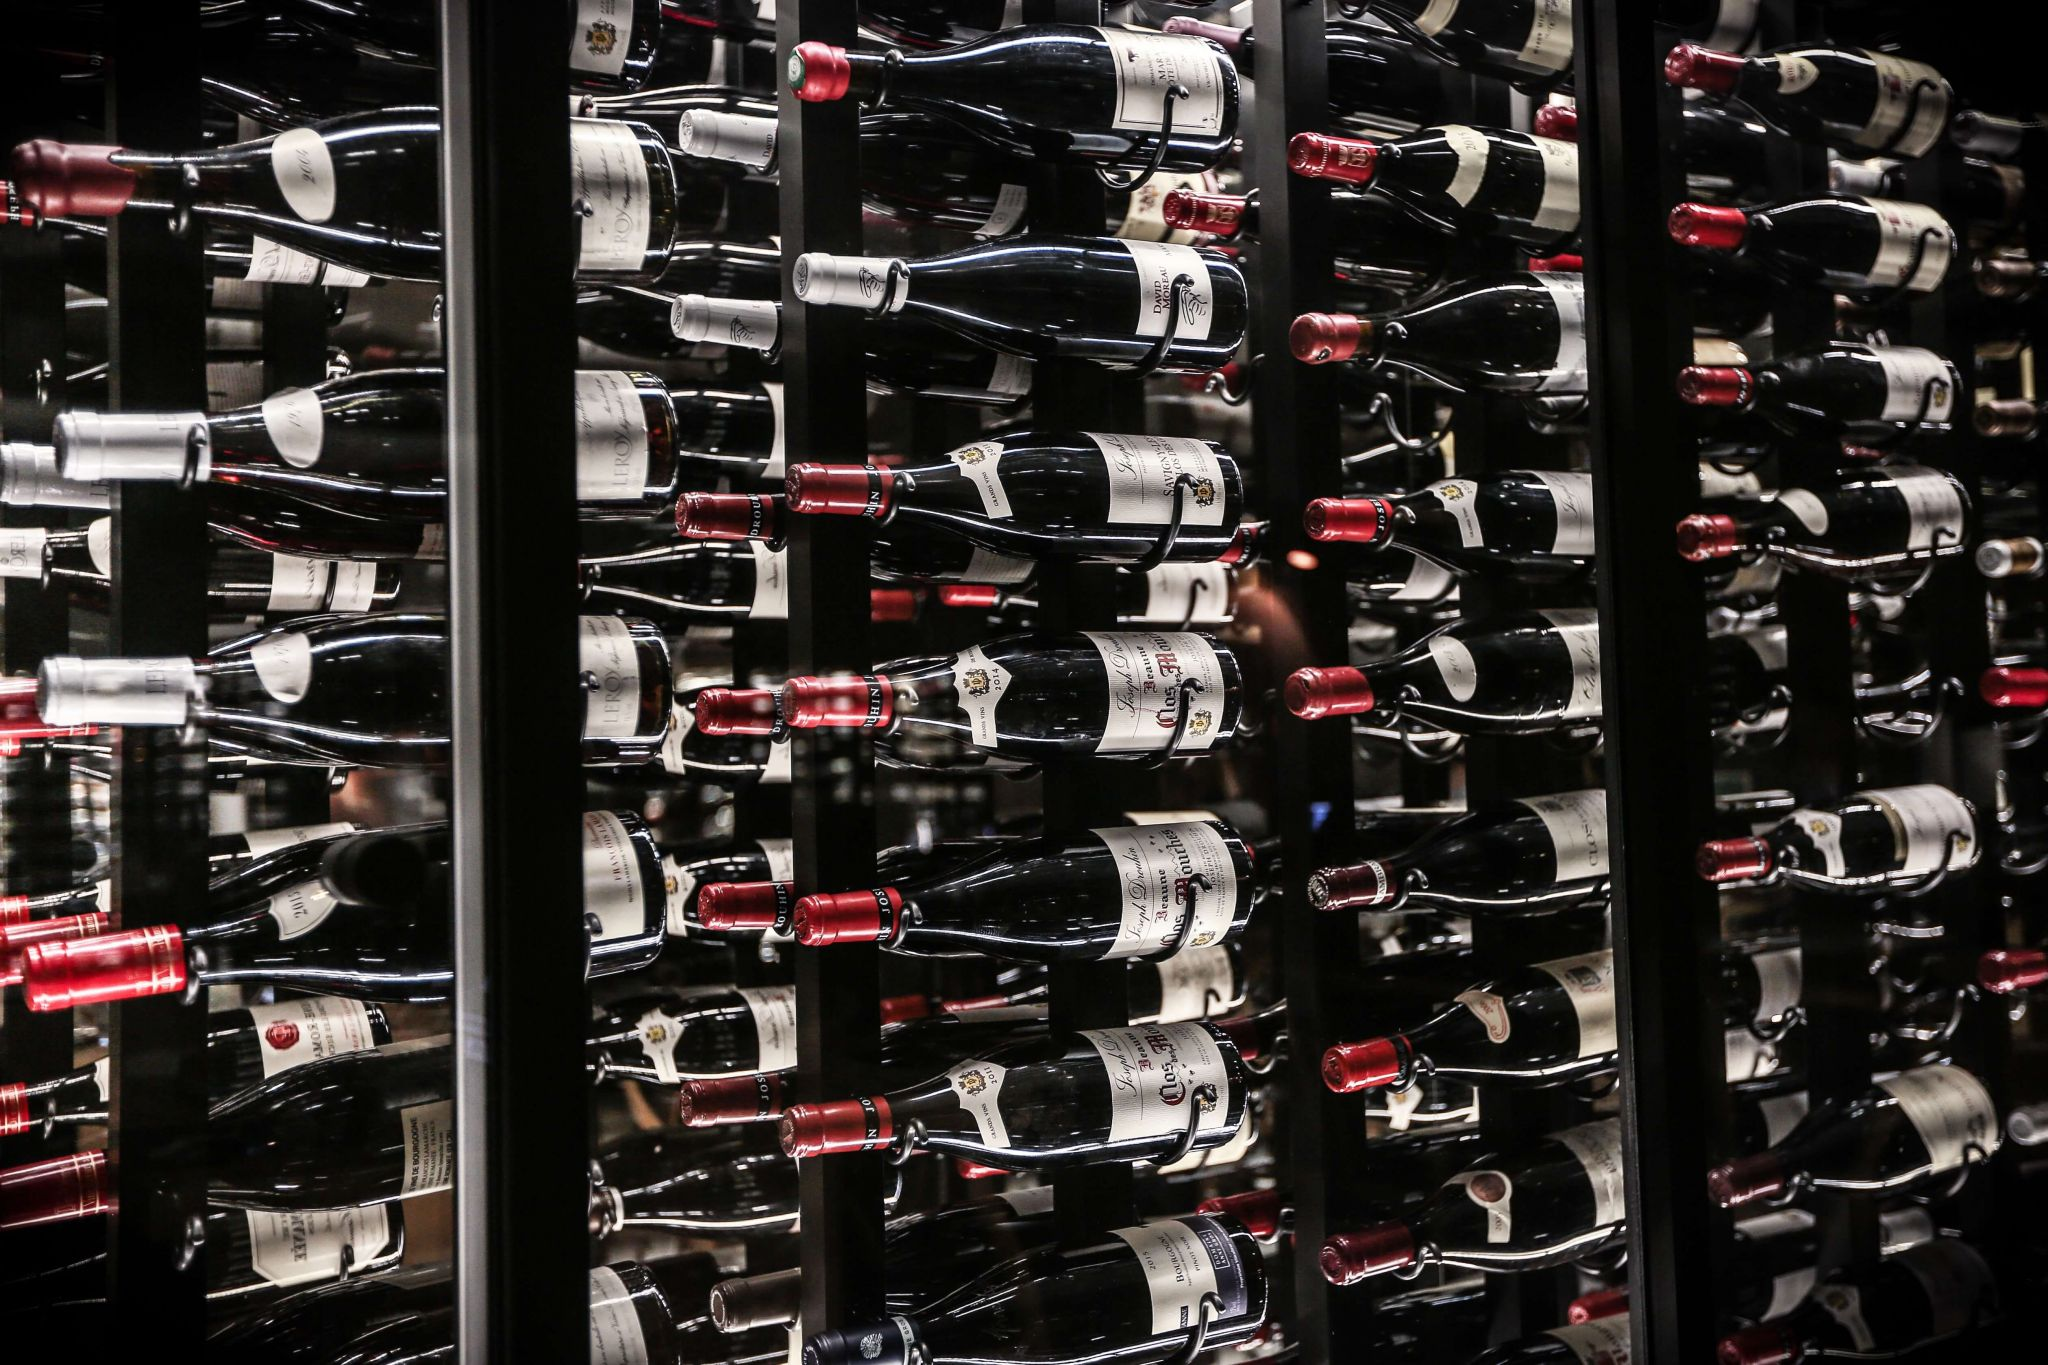 How to store collectibles - wine in wine racks